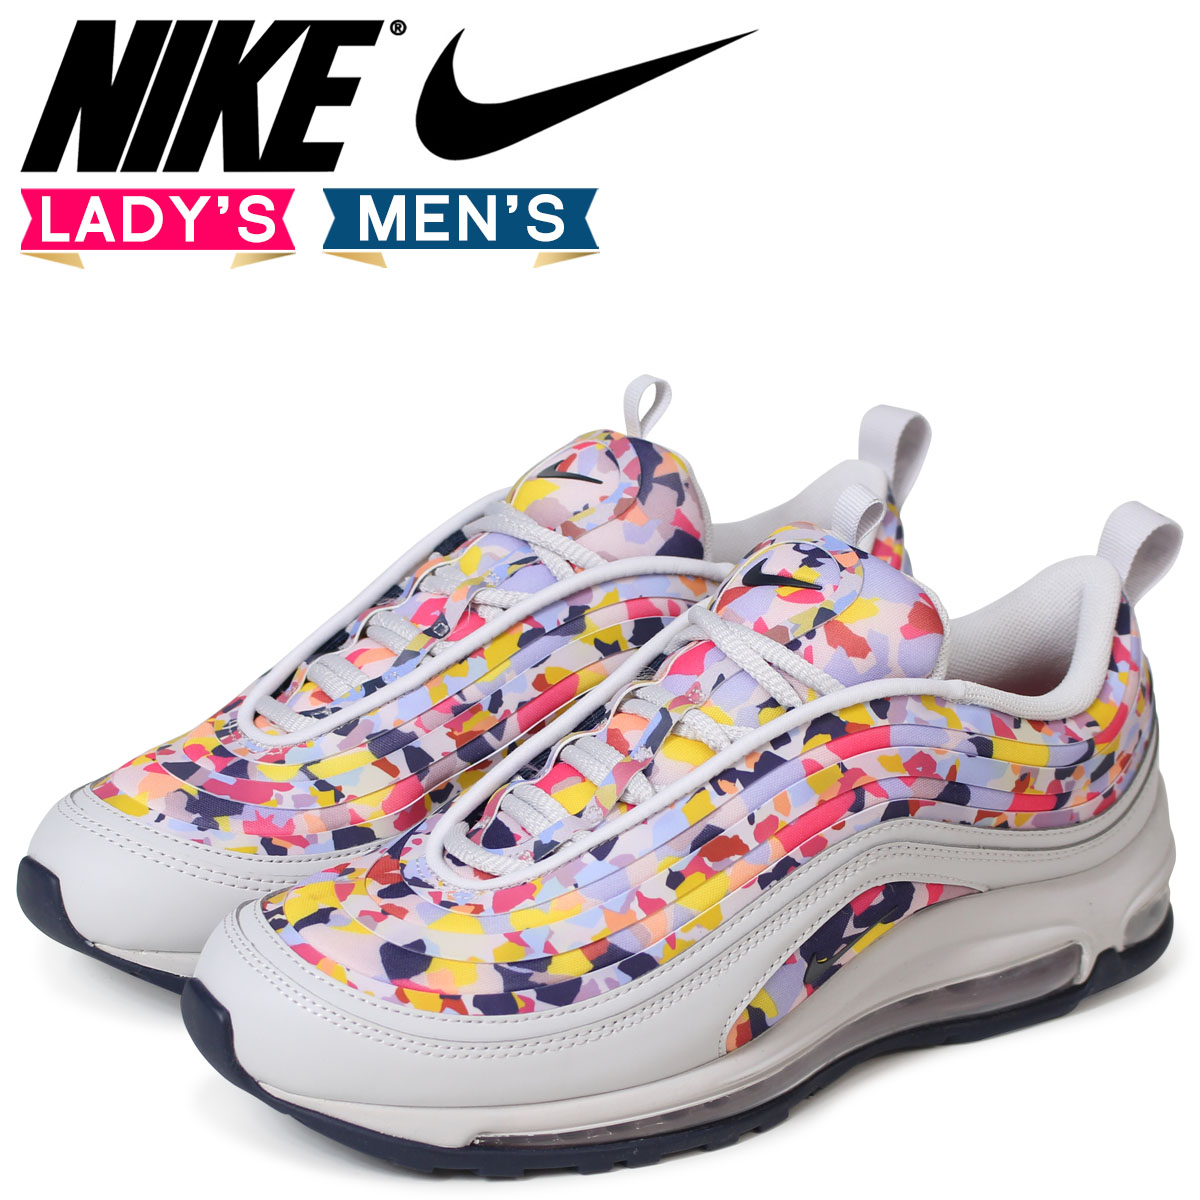 Whats up Sports: NIKE AIR MAX 97 ULTRA Kie Ney AMAX 97 ultra